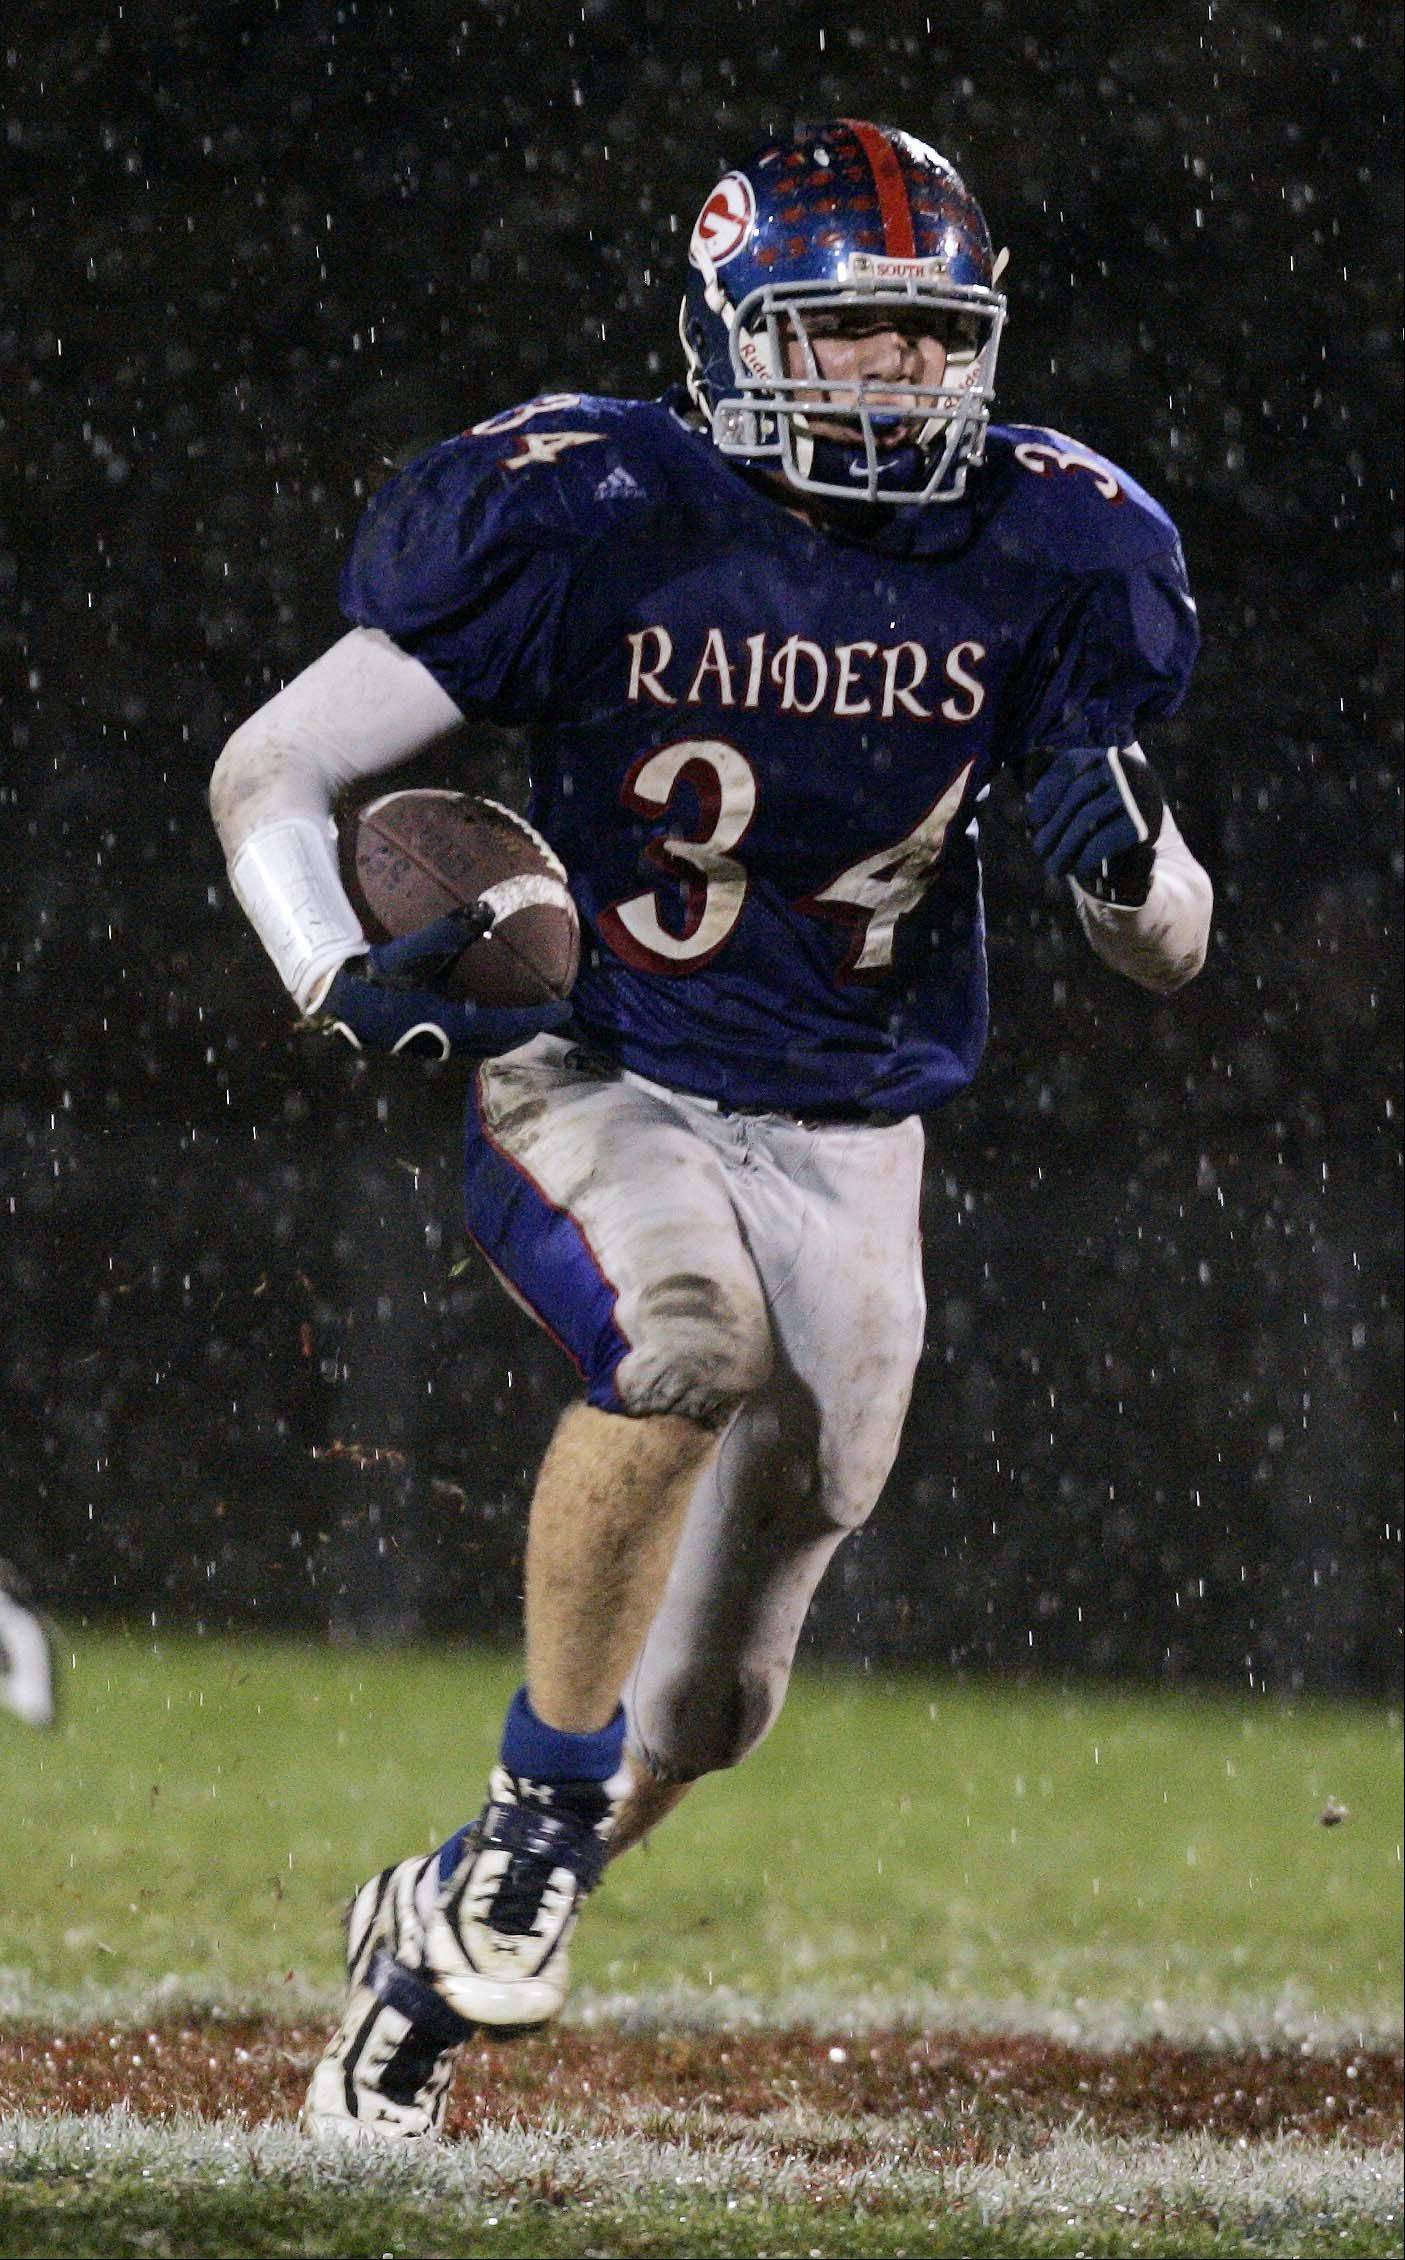 Glenbard South running back Mike Oratowski Glenbard South vs King 6A playoff football first round. Lee photo